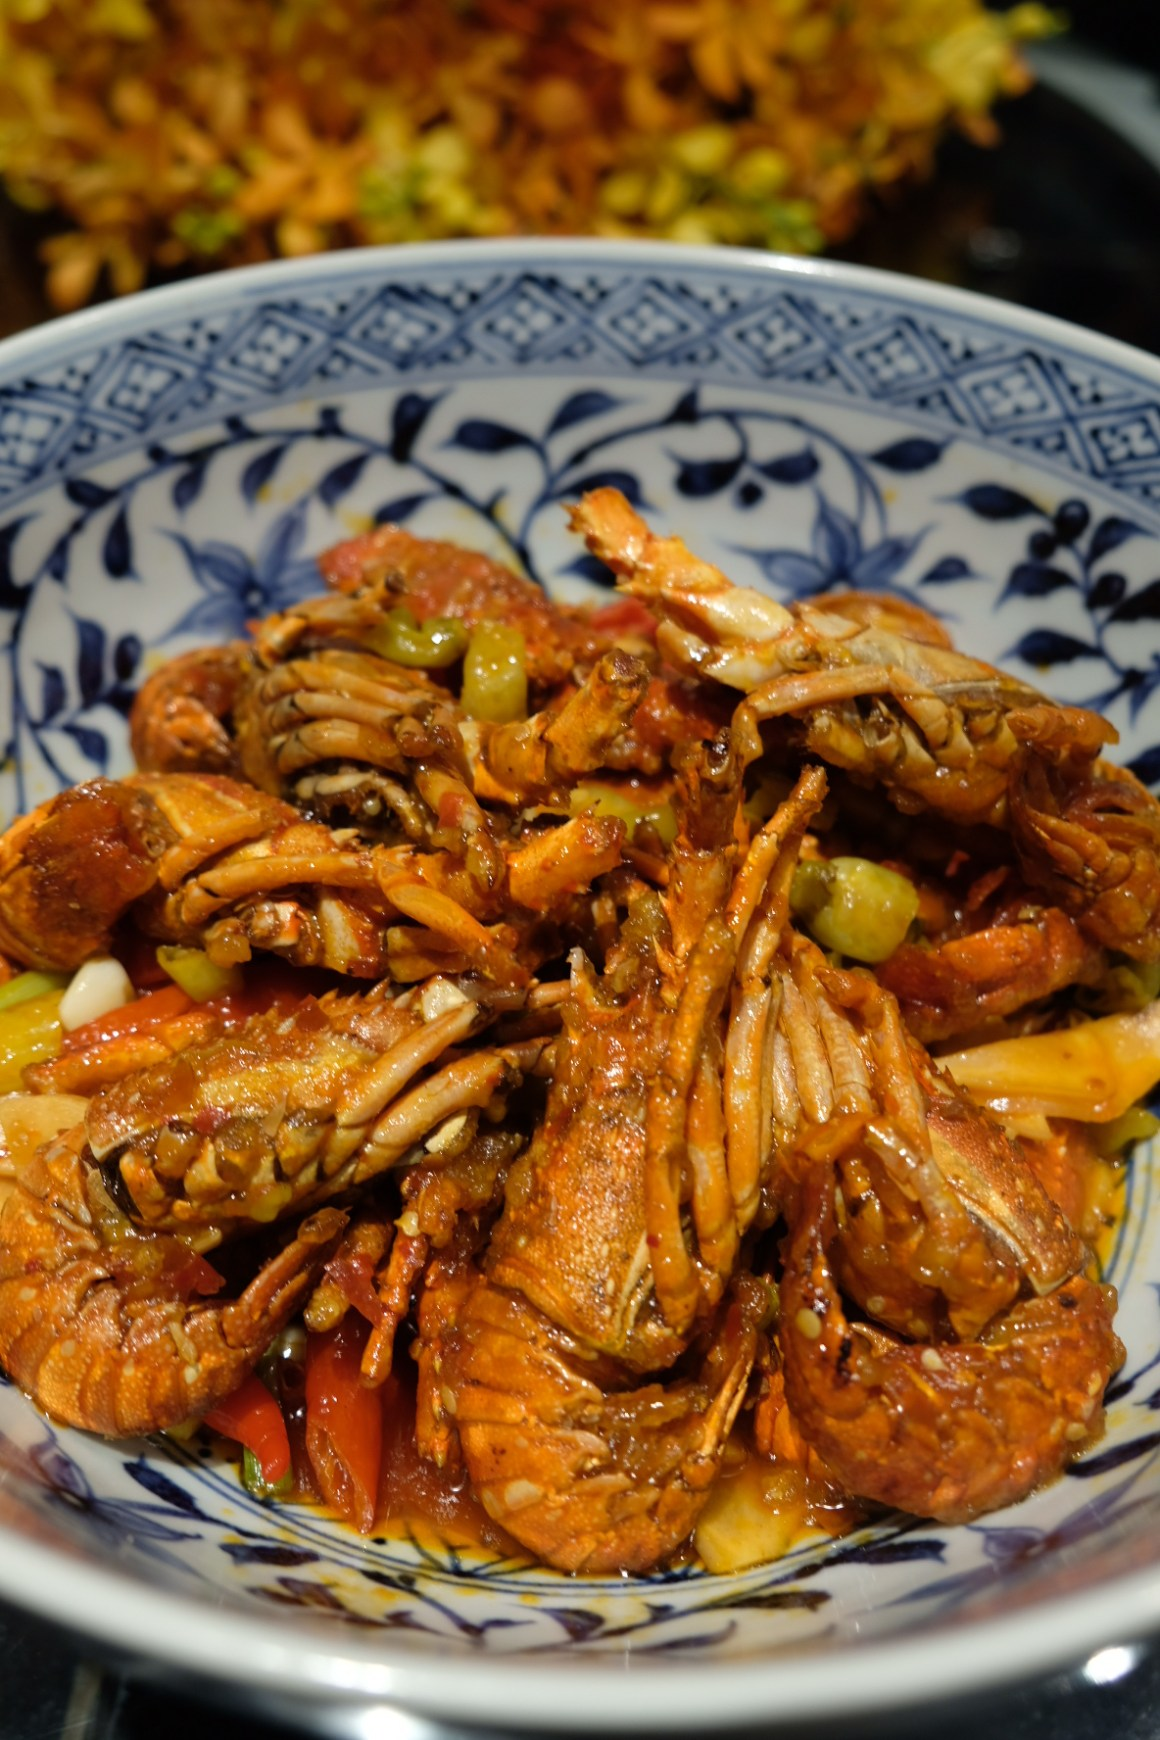 A Tale of Twin Baby Lobster At Si Chuan Dou Hua Restaurant @ PARKROYAL on Beach Road - Stir-fried Baby Lobster with Preserved Chilli and Chilli Padi